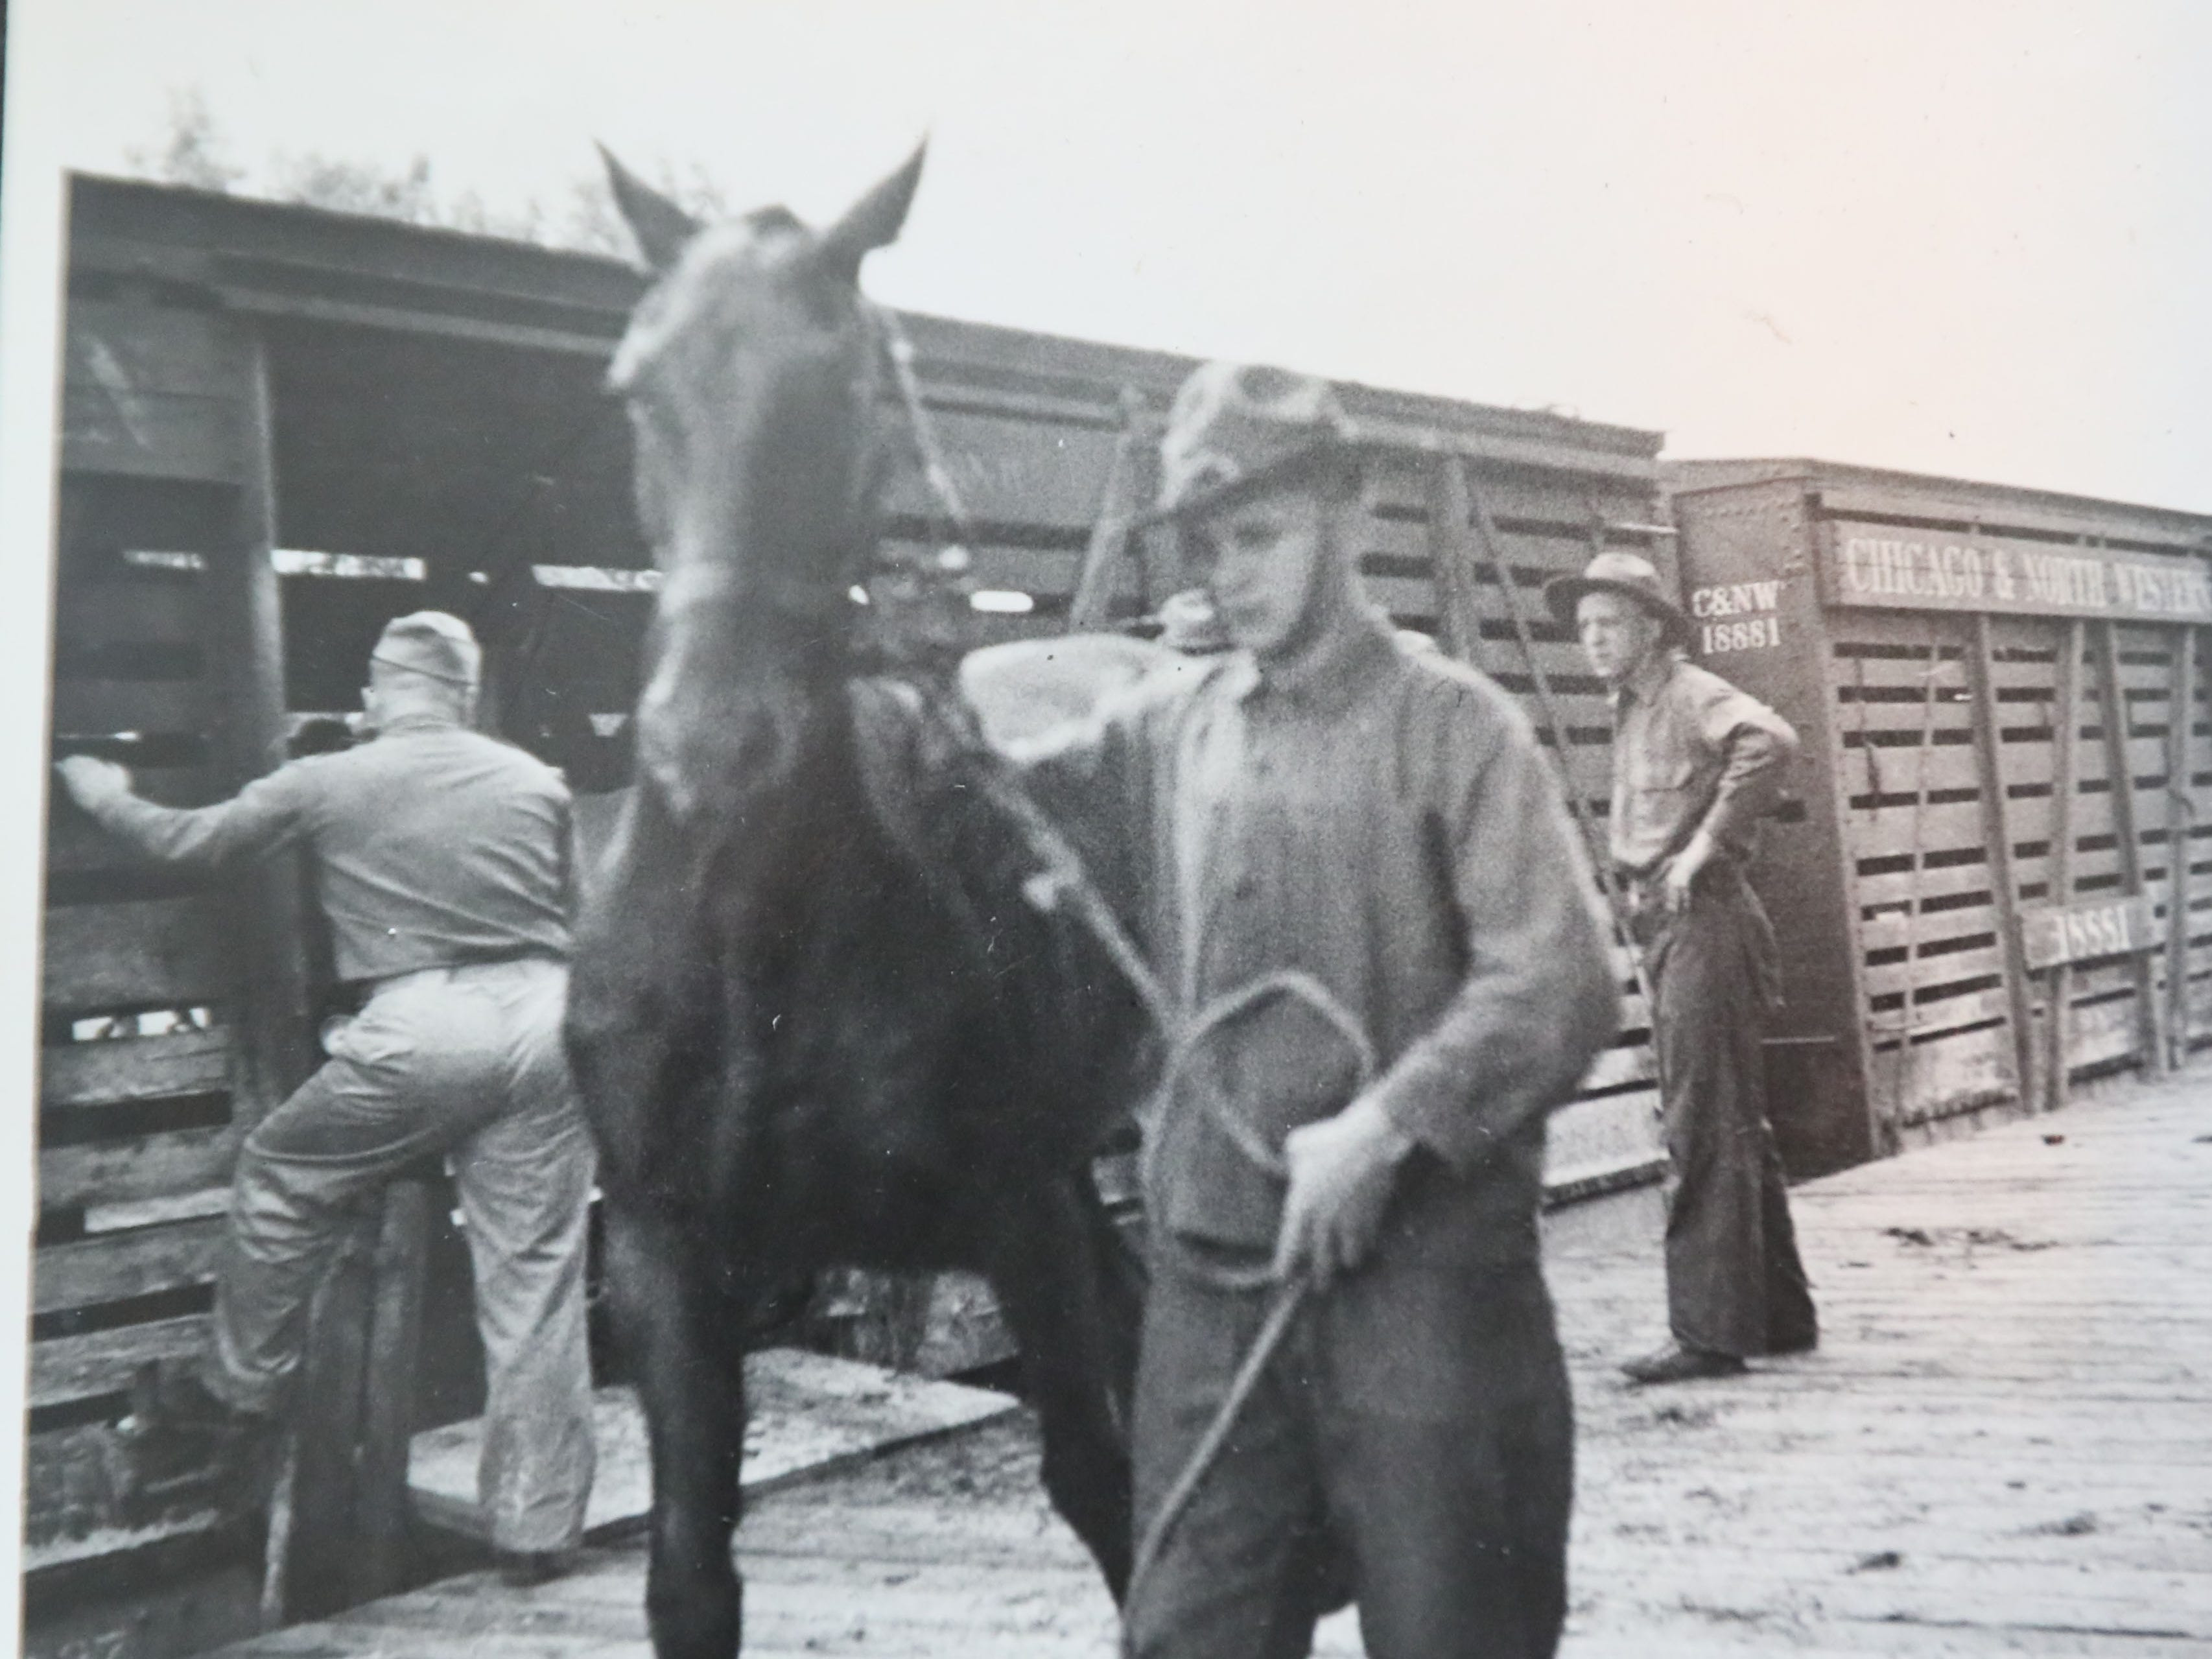 A photo of the 105th Cavalry unloading horses.